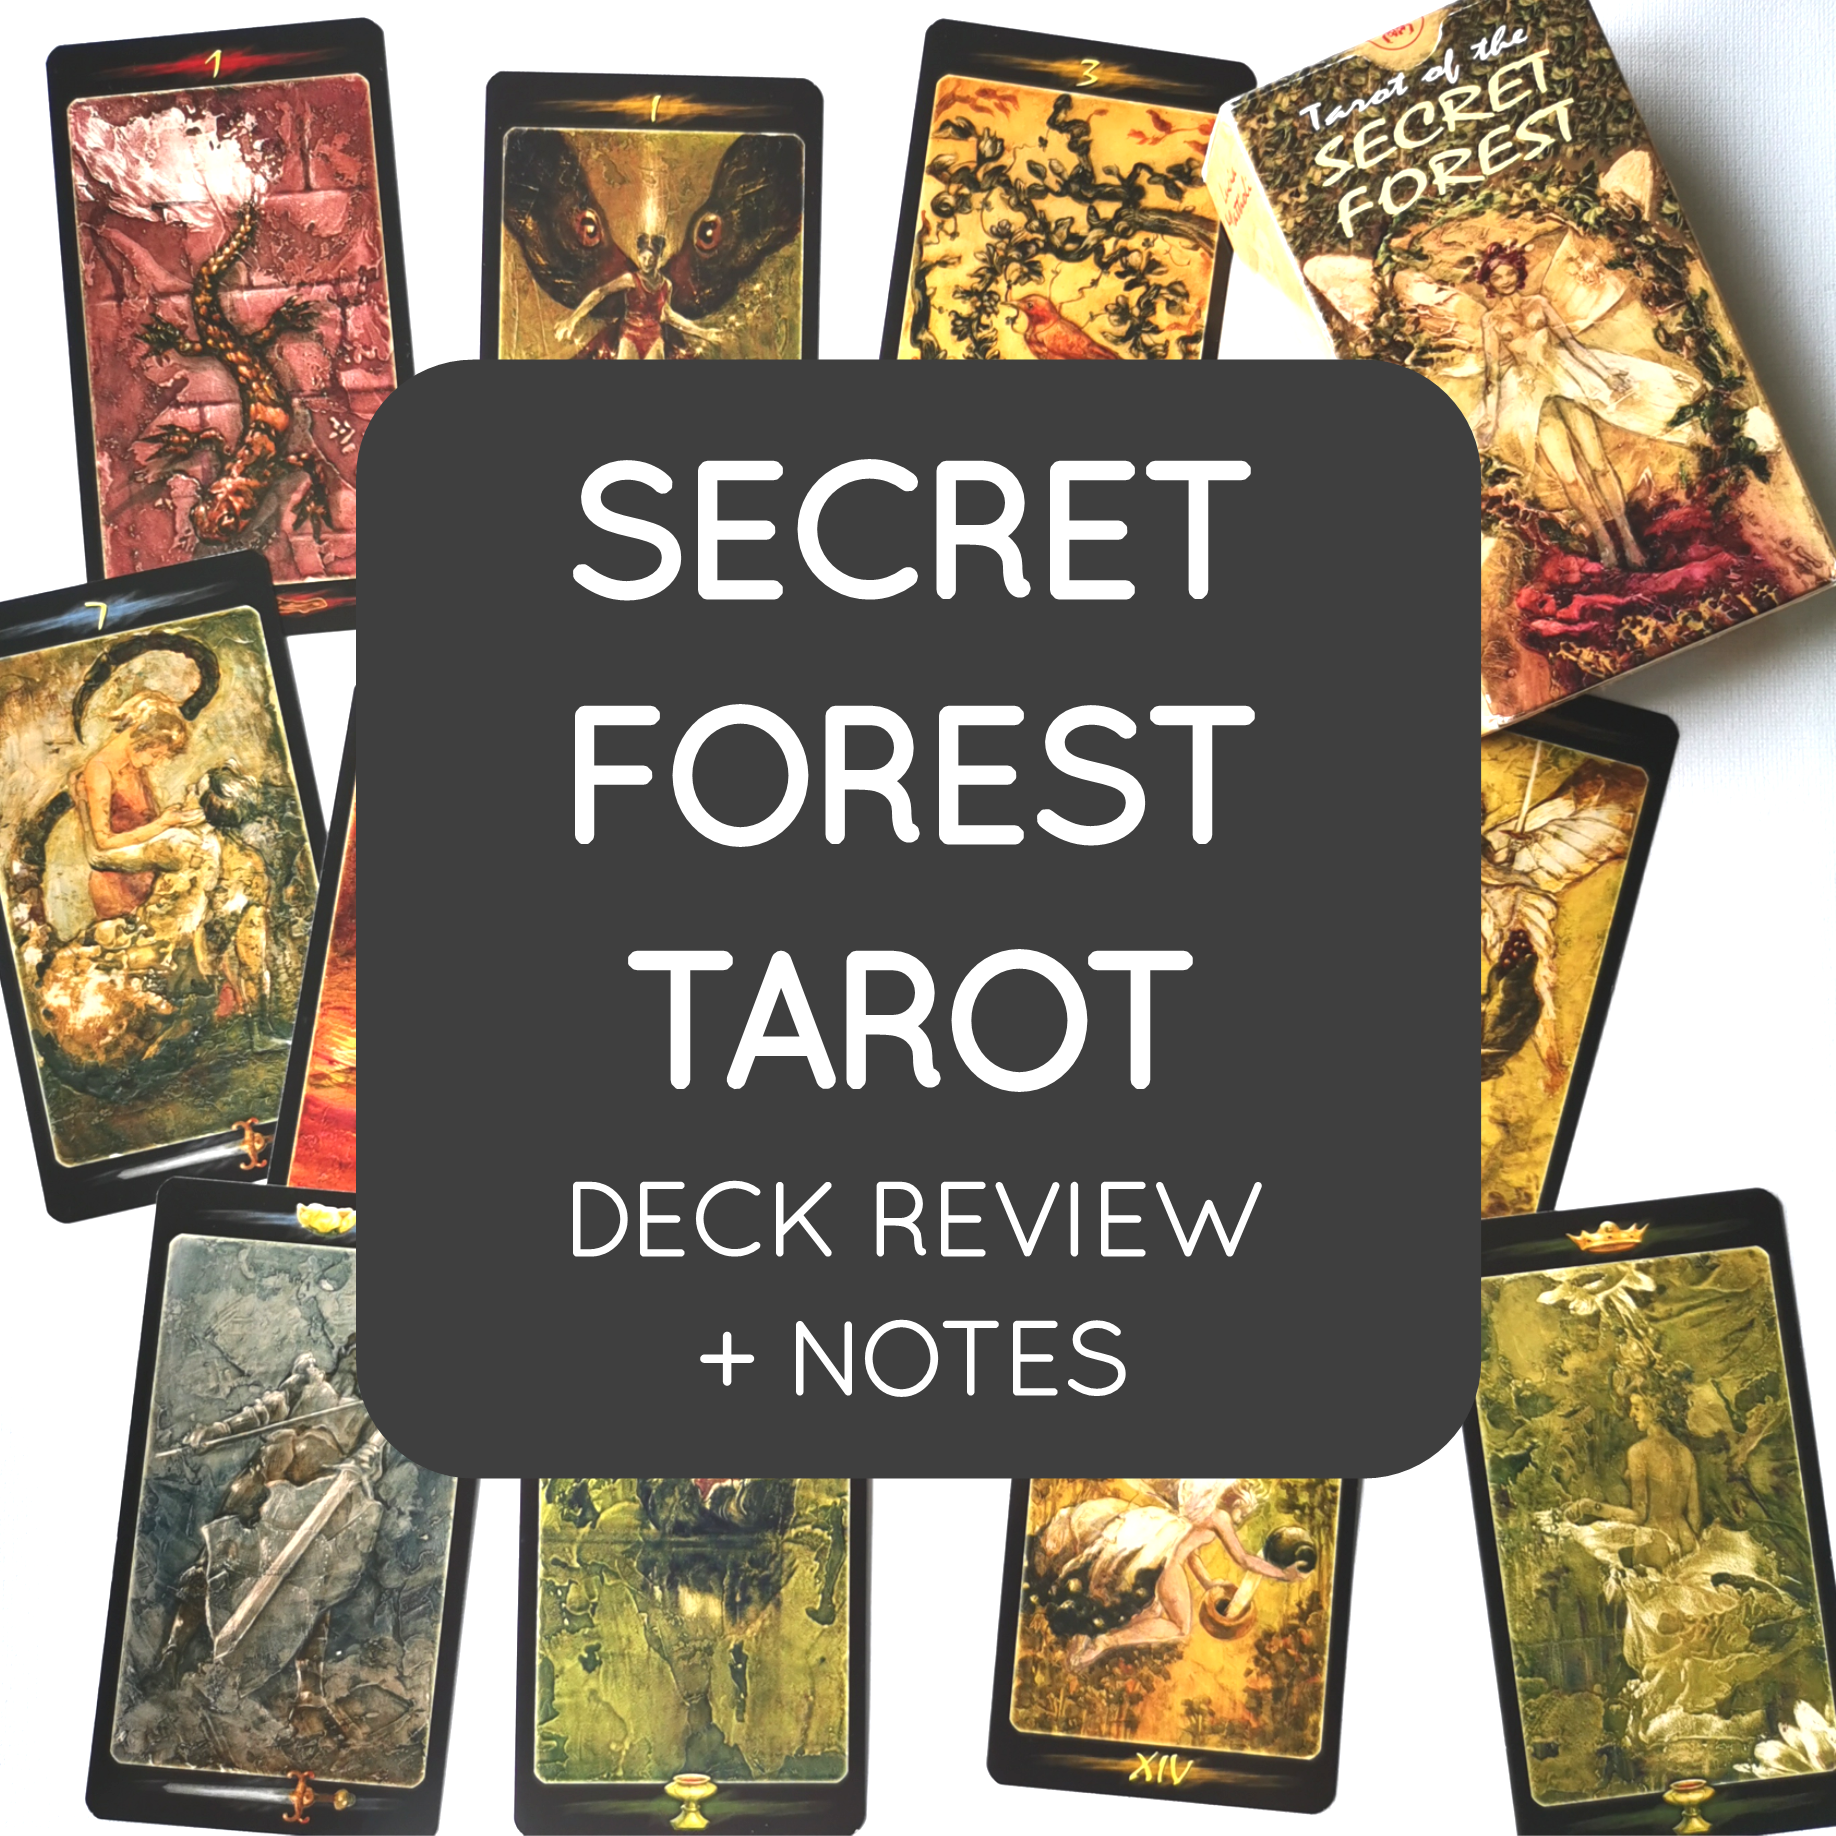 06-secret forest tarot.png